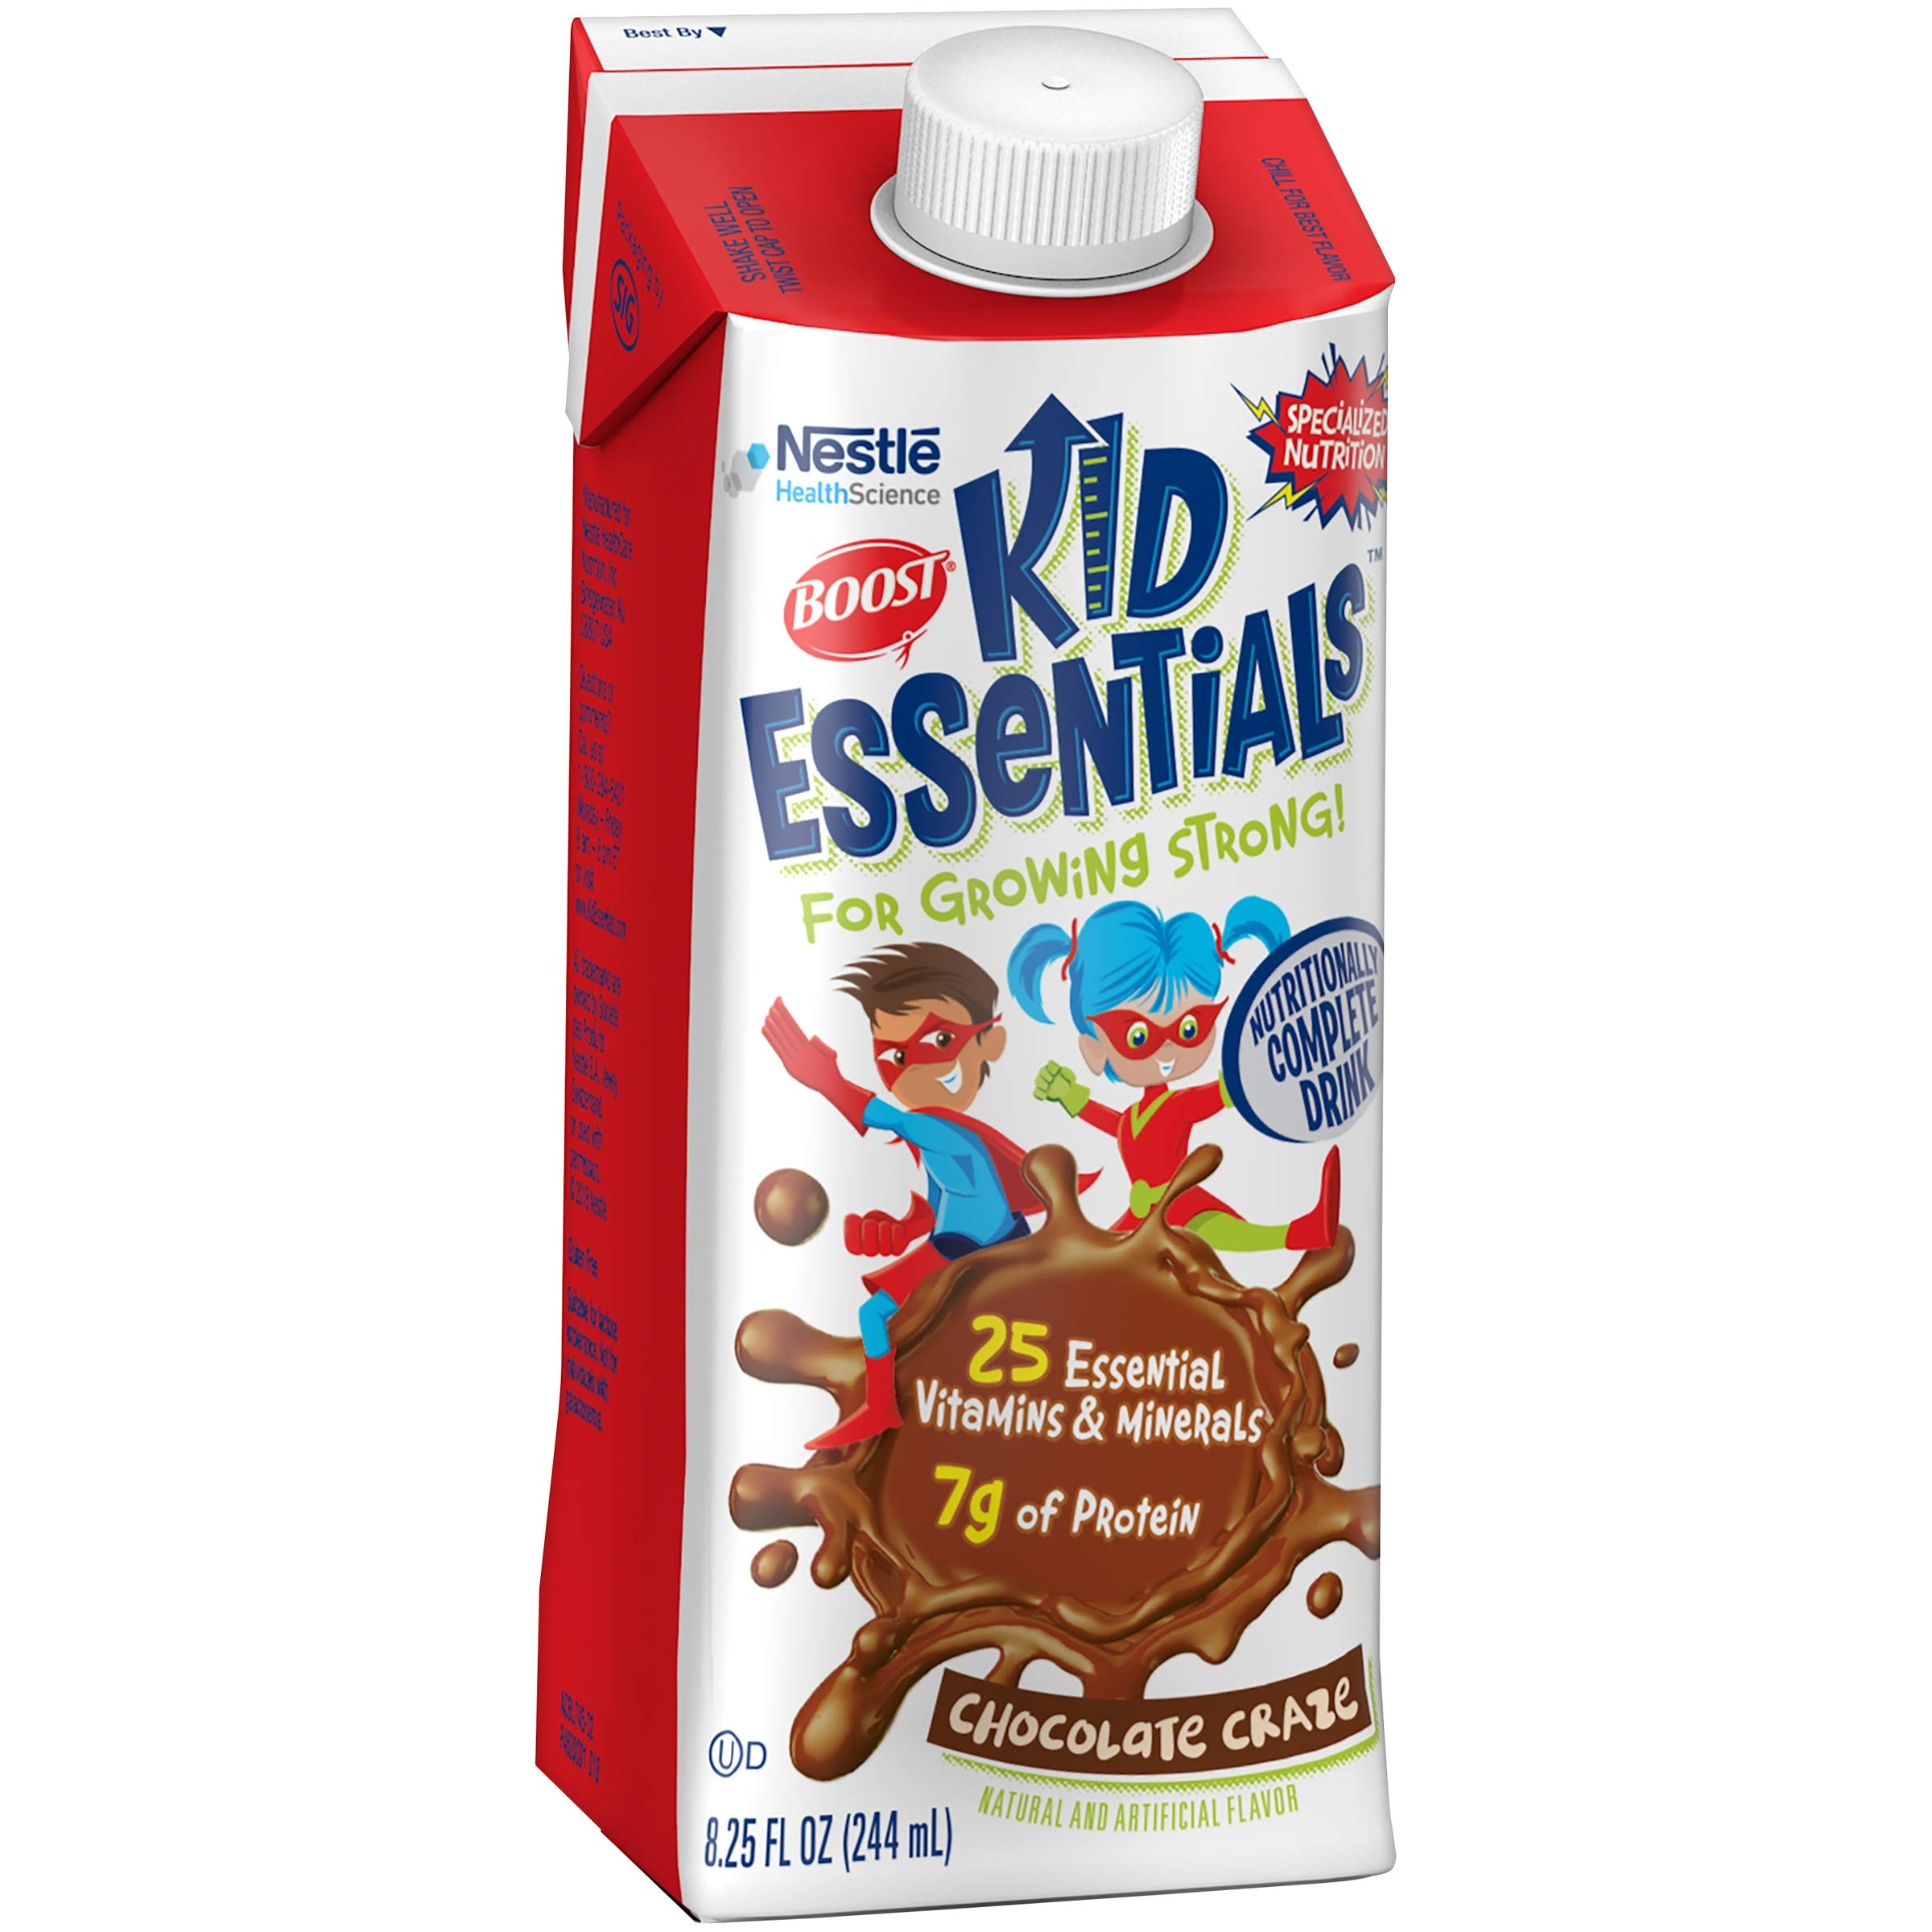 Boost Kid Essentials Nutritionally Complete Drink, Chocolate, 8.25 fl oz box, 16 Pack (Packaging May Vary) by Boost Kids Essentials